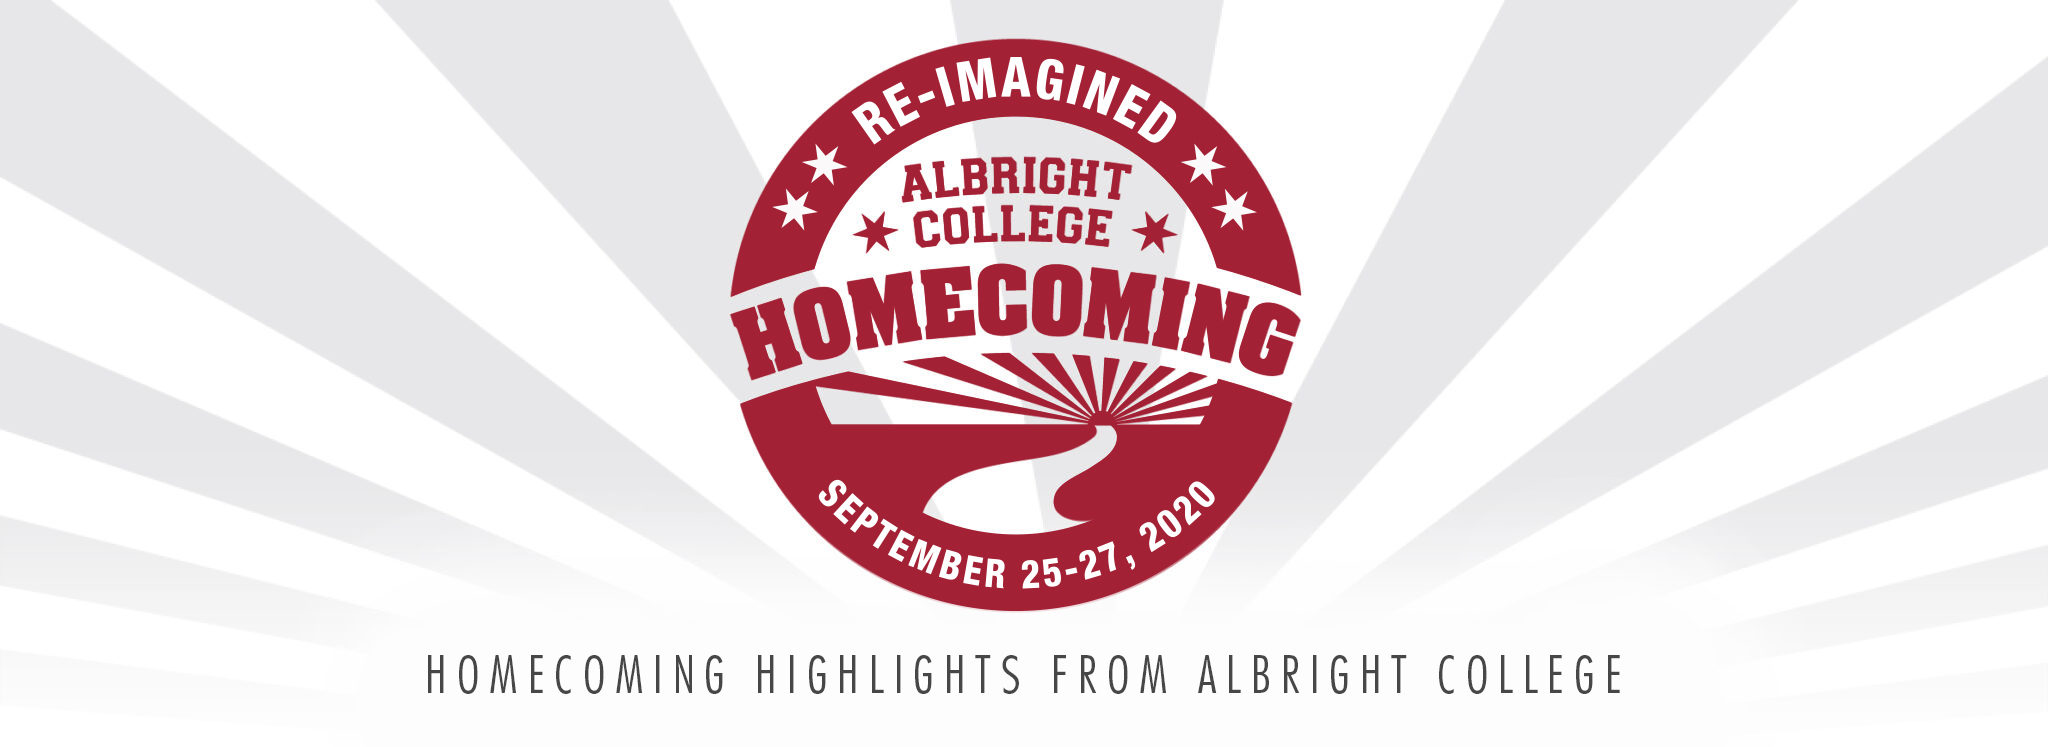 Albright Challenge. 686 donors, highest number of donors ever! $101,133 raised in over just 2 days! Thank you!